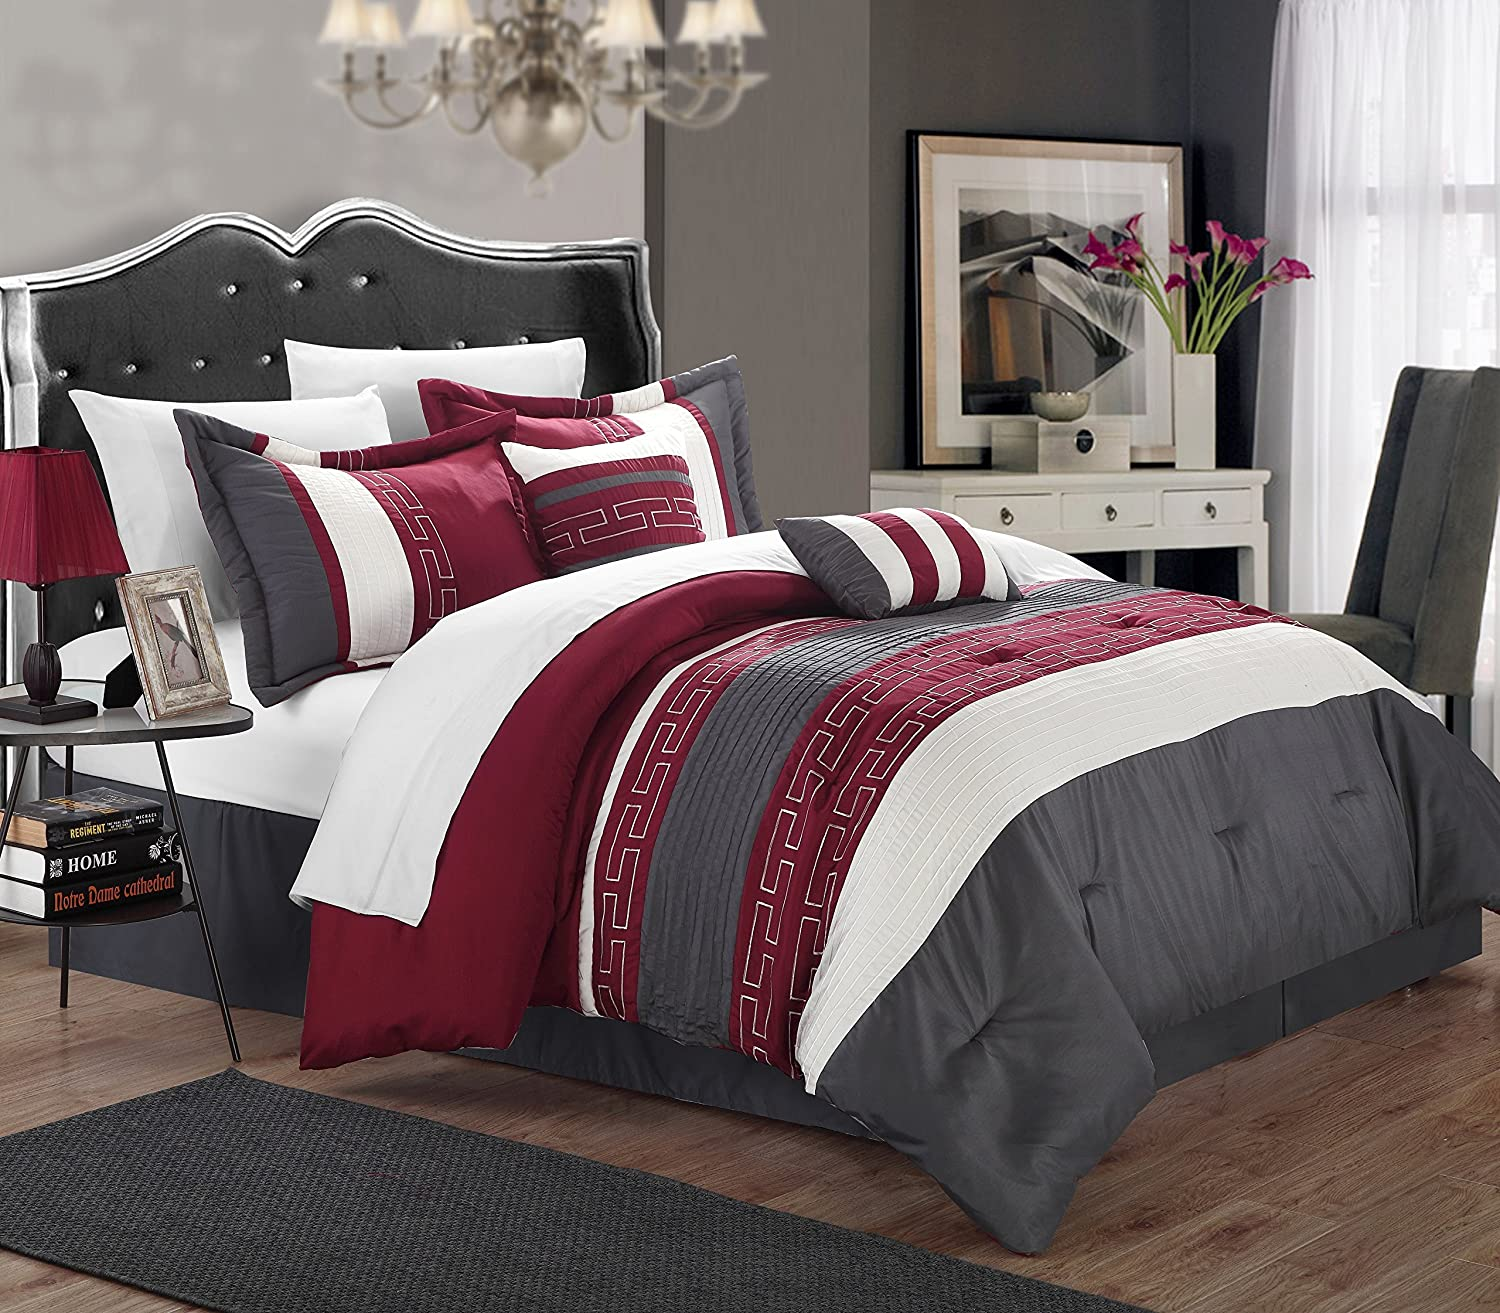 amazoncom chic home carlton 6piece comforter set queen size burgundy home u0026 kitchen